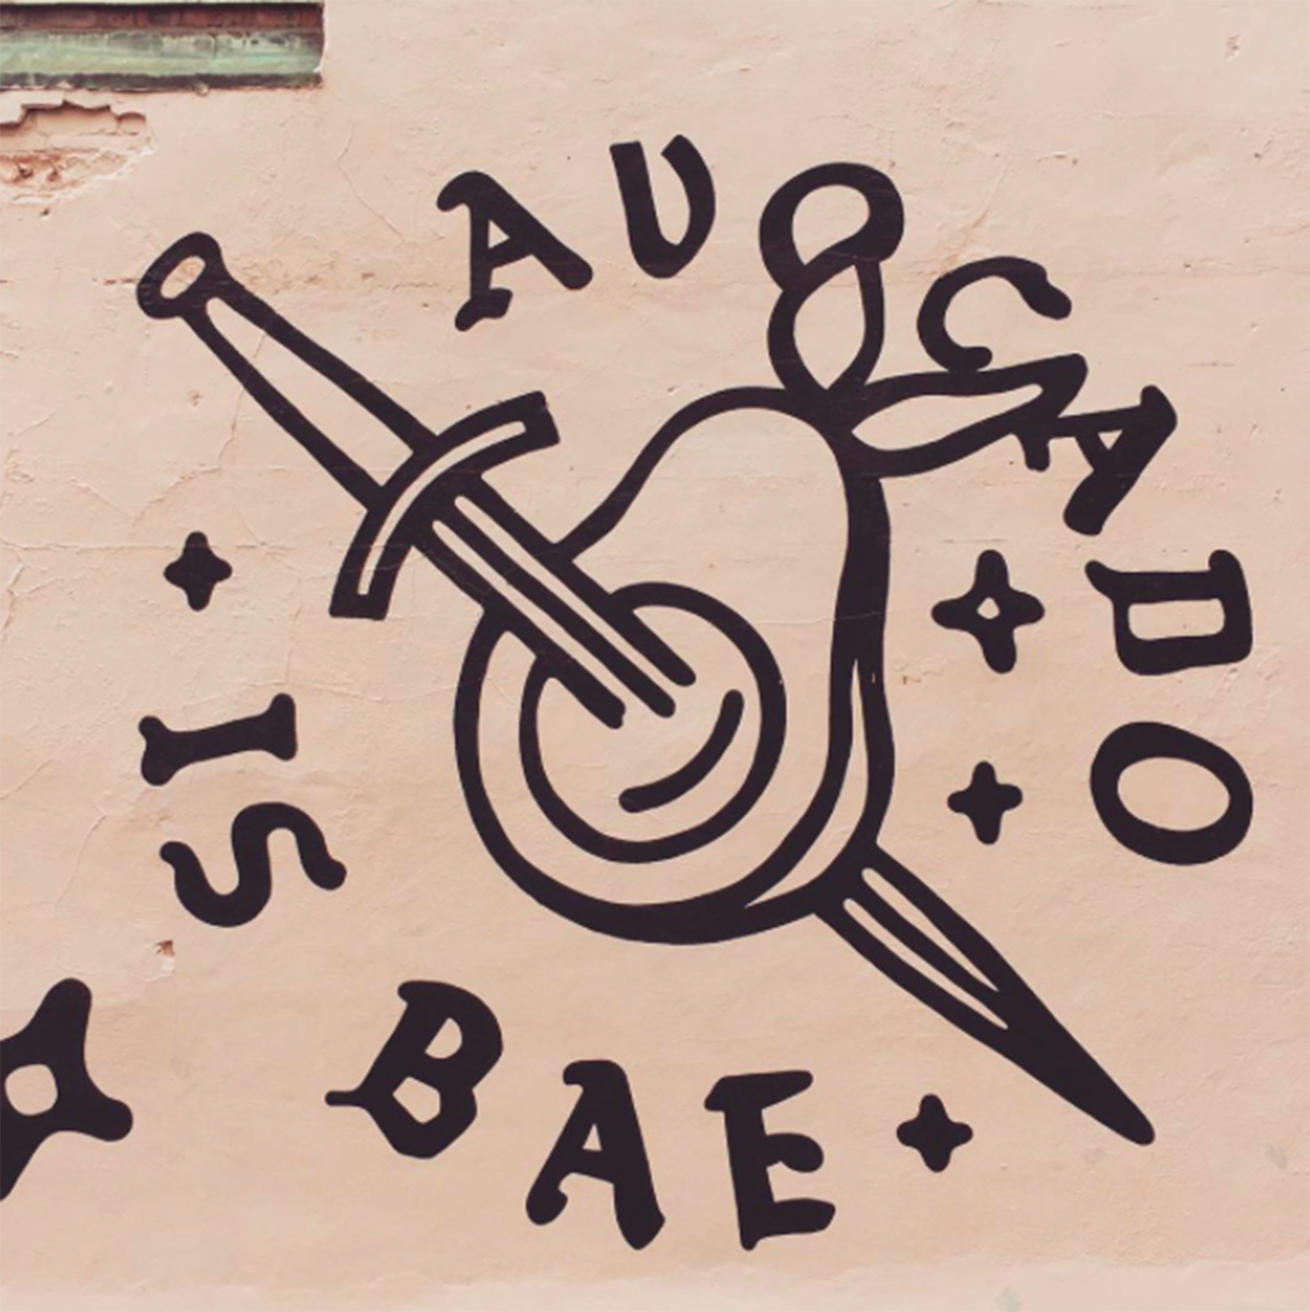 Liverpool blogger instagram, avocado is bae, liverpool street art, love thy neighbour bold street